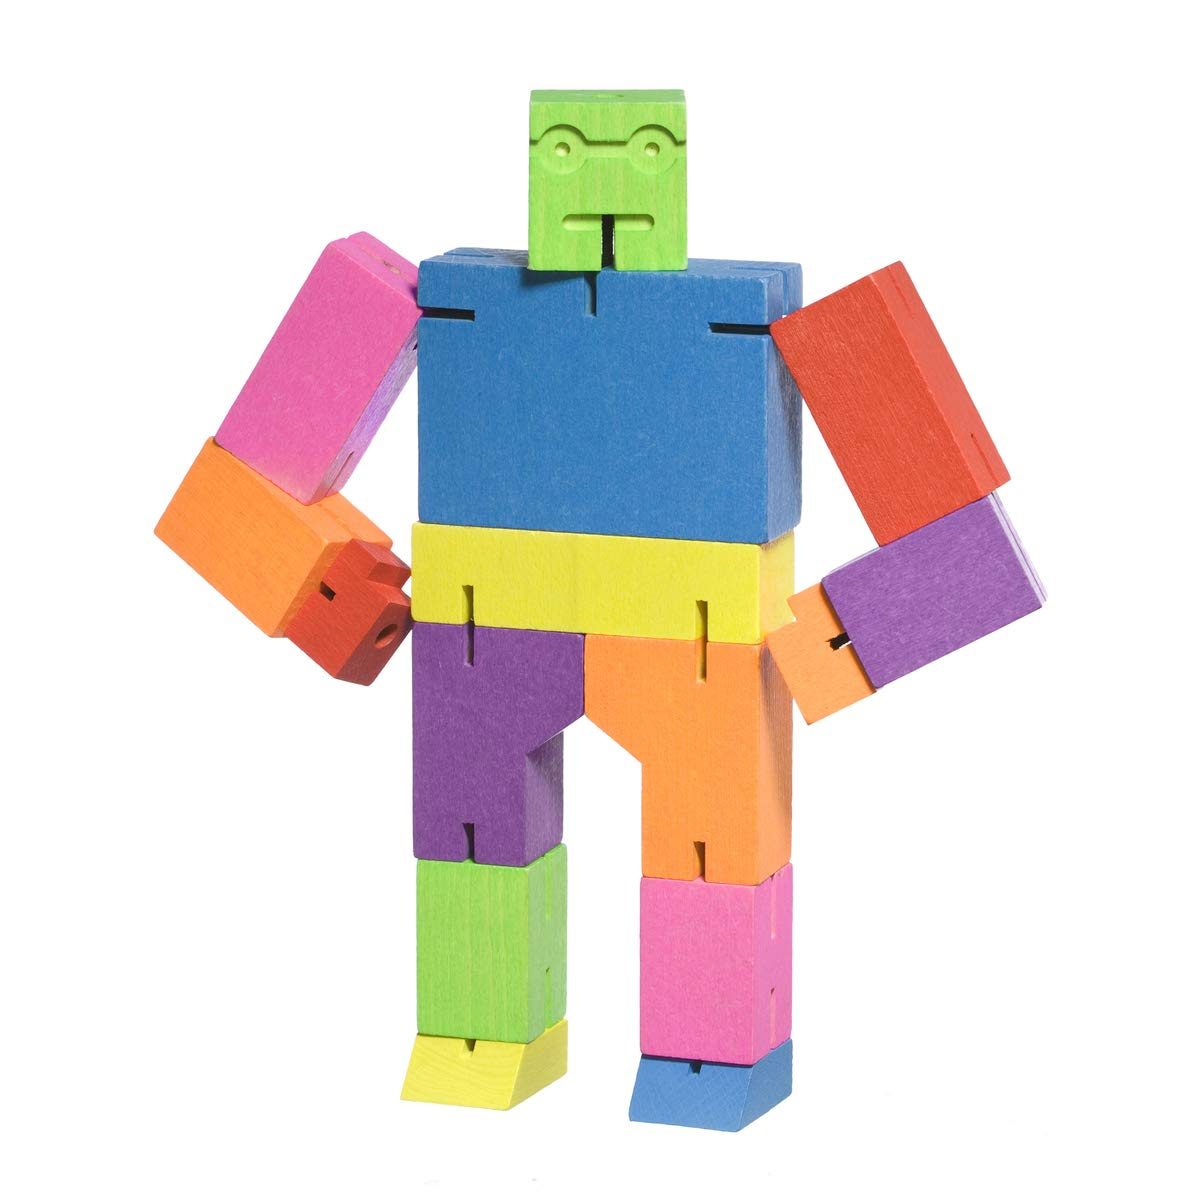 Areaware Medium Cubebot Multi Color Puzzle by Areaware